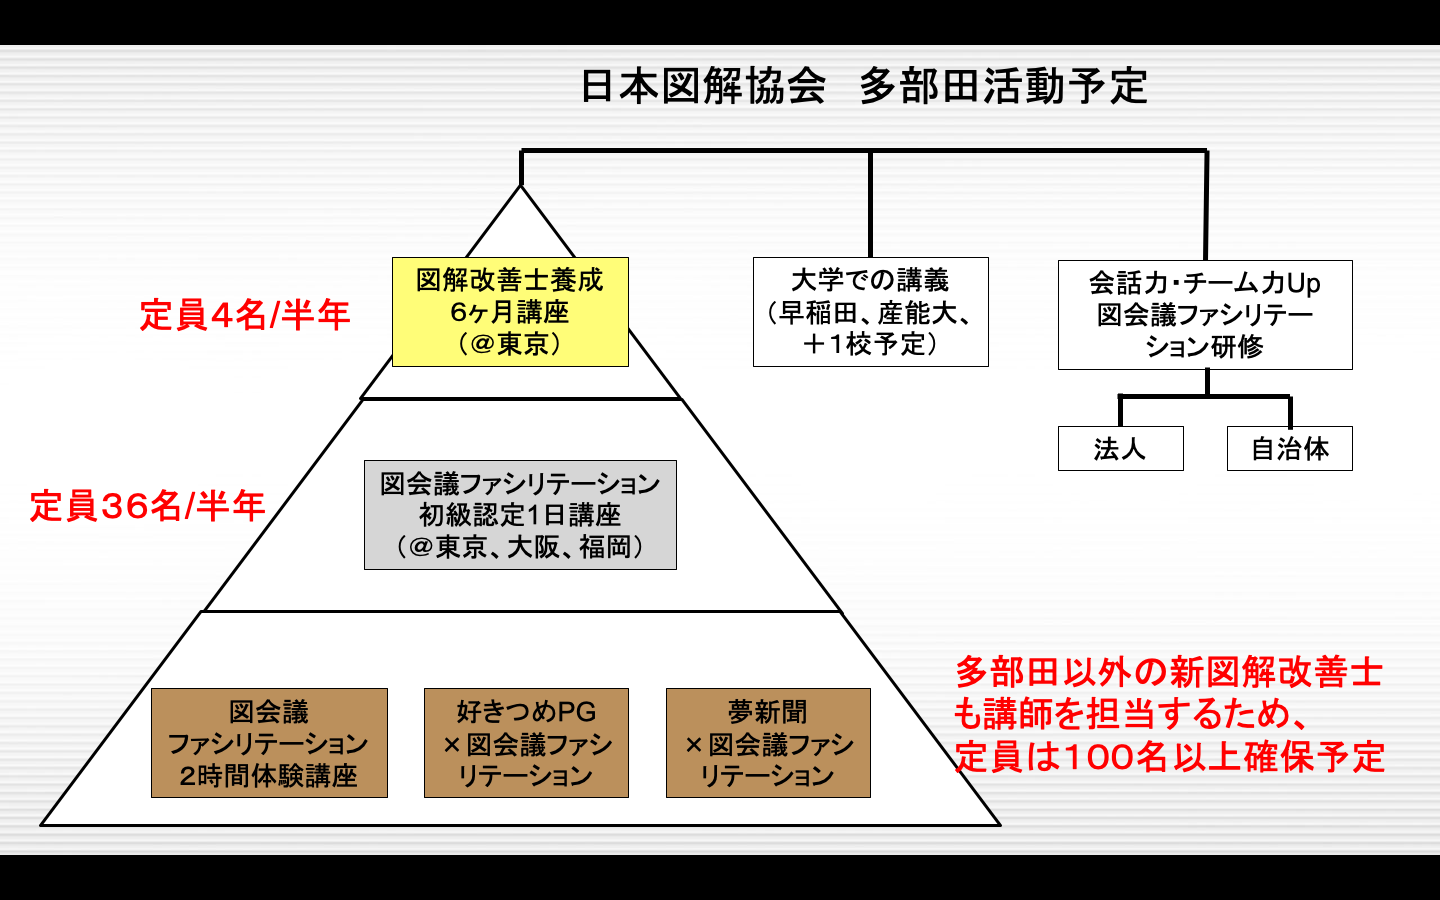 http://www.zukai.or.jp/news/a8bb1686eb3f720b9166af3e0d06269f5e8bff7e.png